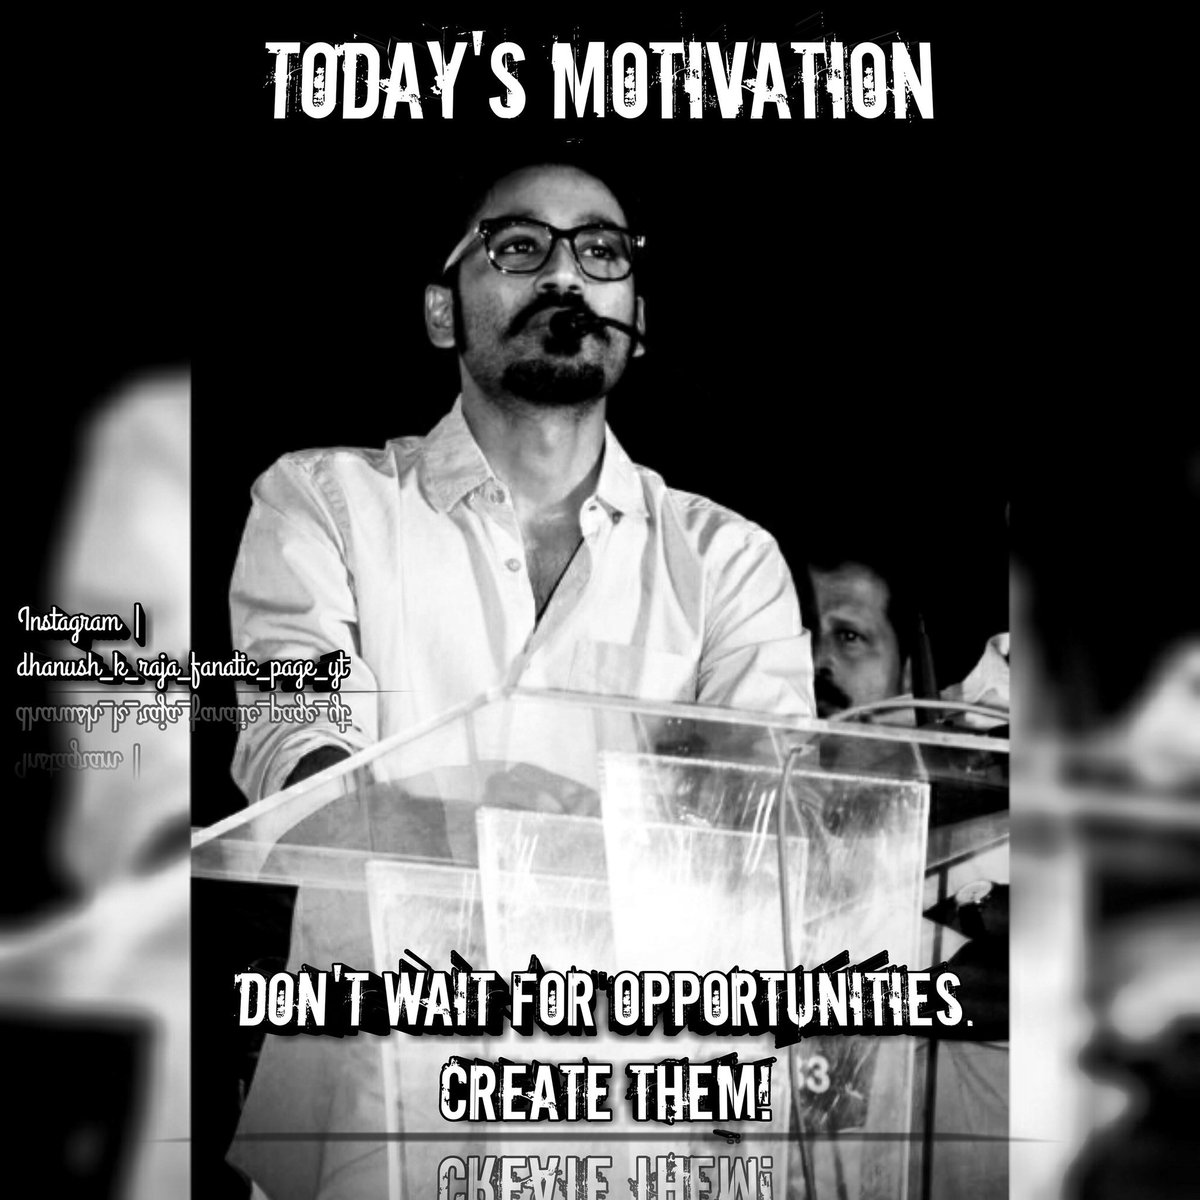 ❤ Today's Motivation❤as of 28 May 2019.... Follow us For More #Dhanushism!😍😘 #dhanushveriyan #dhanushmass #dhanushkraja #Dhanush  #dhanushkodi #dhanushfc #dhanushian  #dhanuskodi #dhanushkraja_fc #followme #followtrain #followback #followforfollowback  #followforfollowback